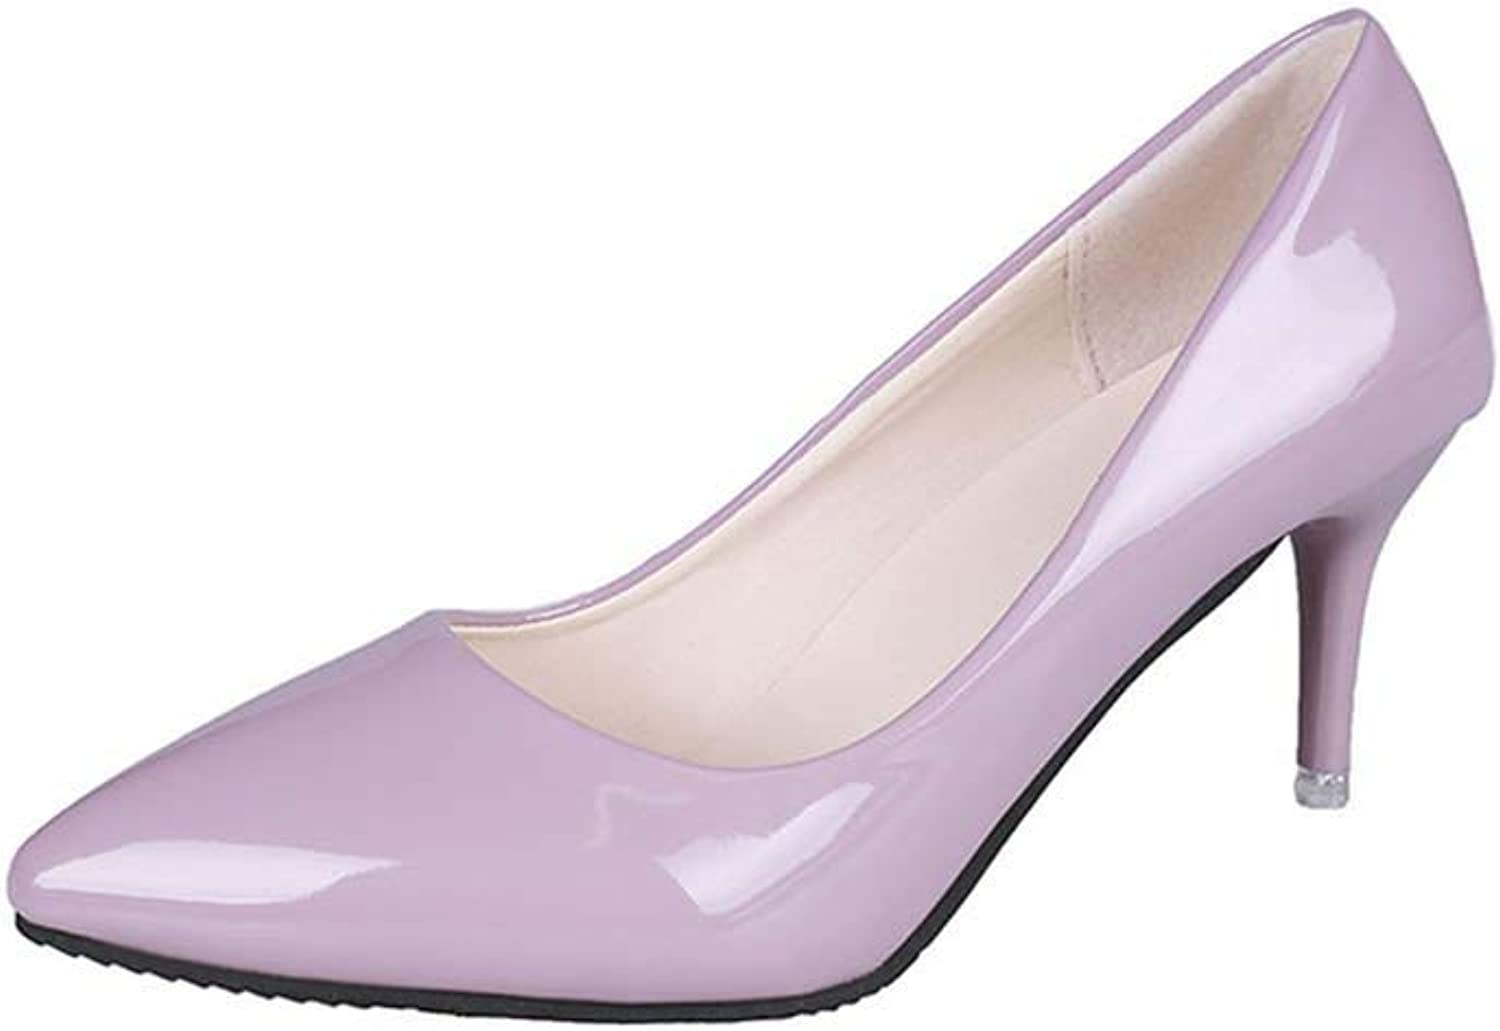 Woman shoes Pointed Fine with Heels Shallow Mouth High Heels Patent Leather Summer Pumps